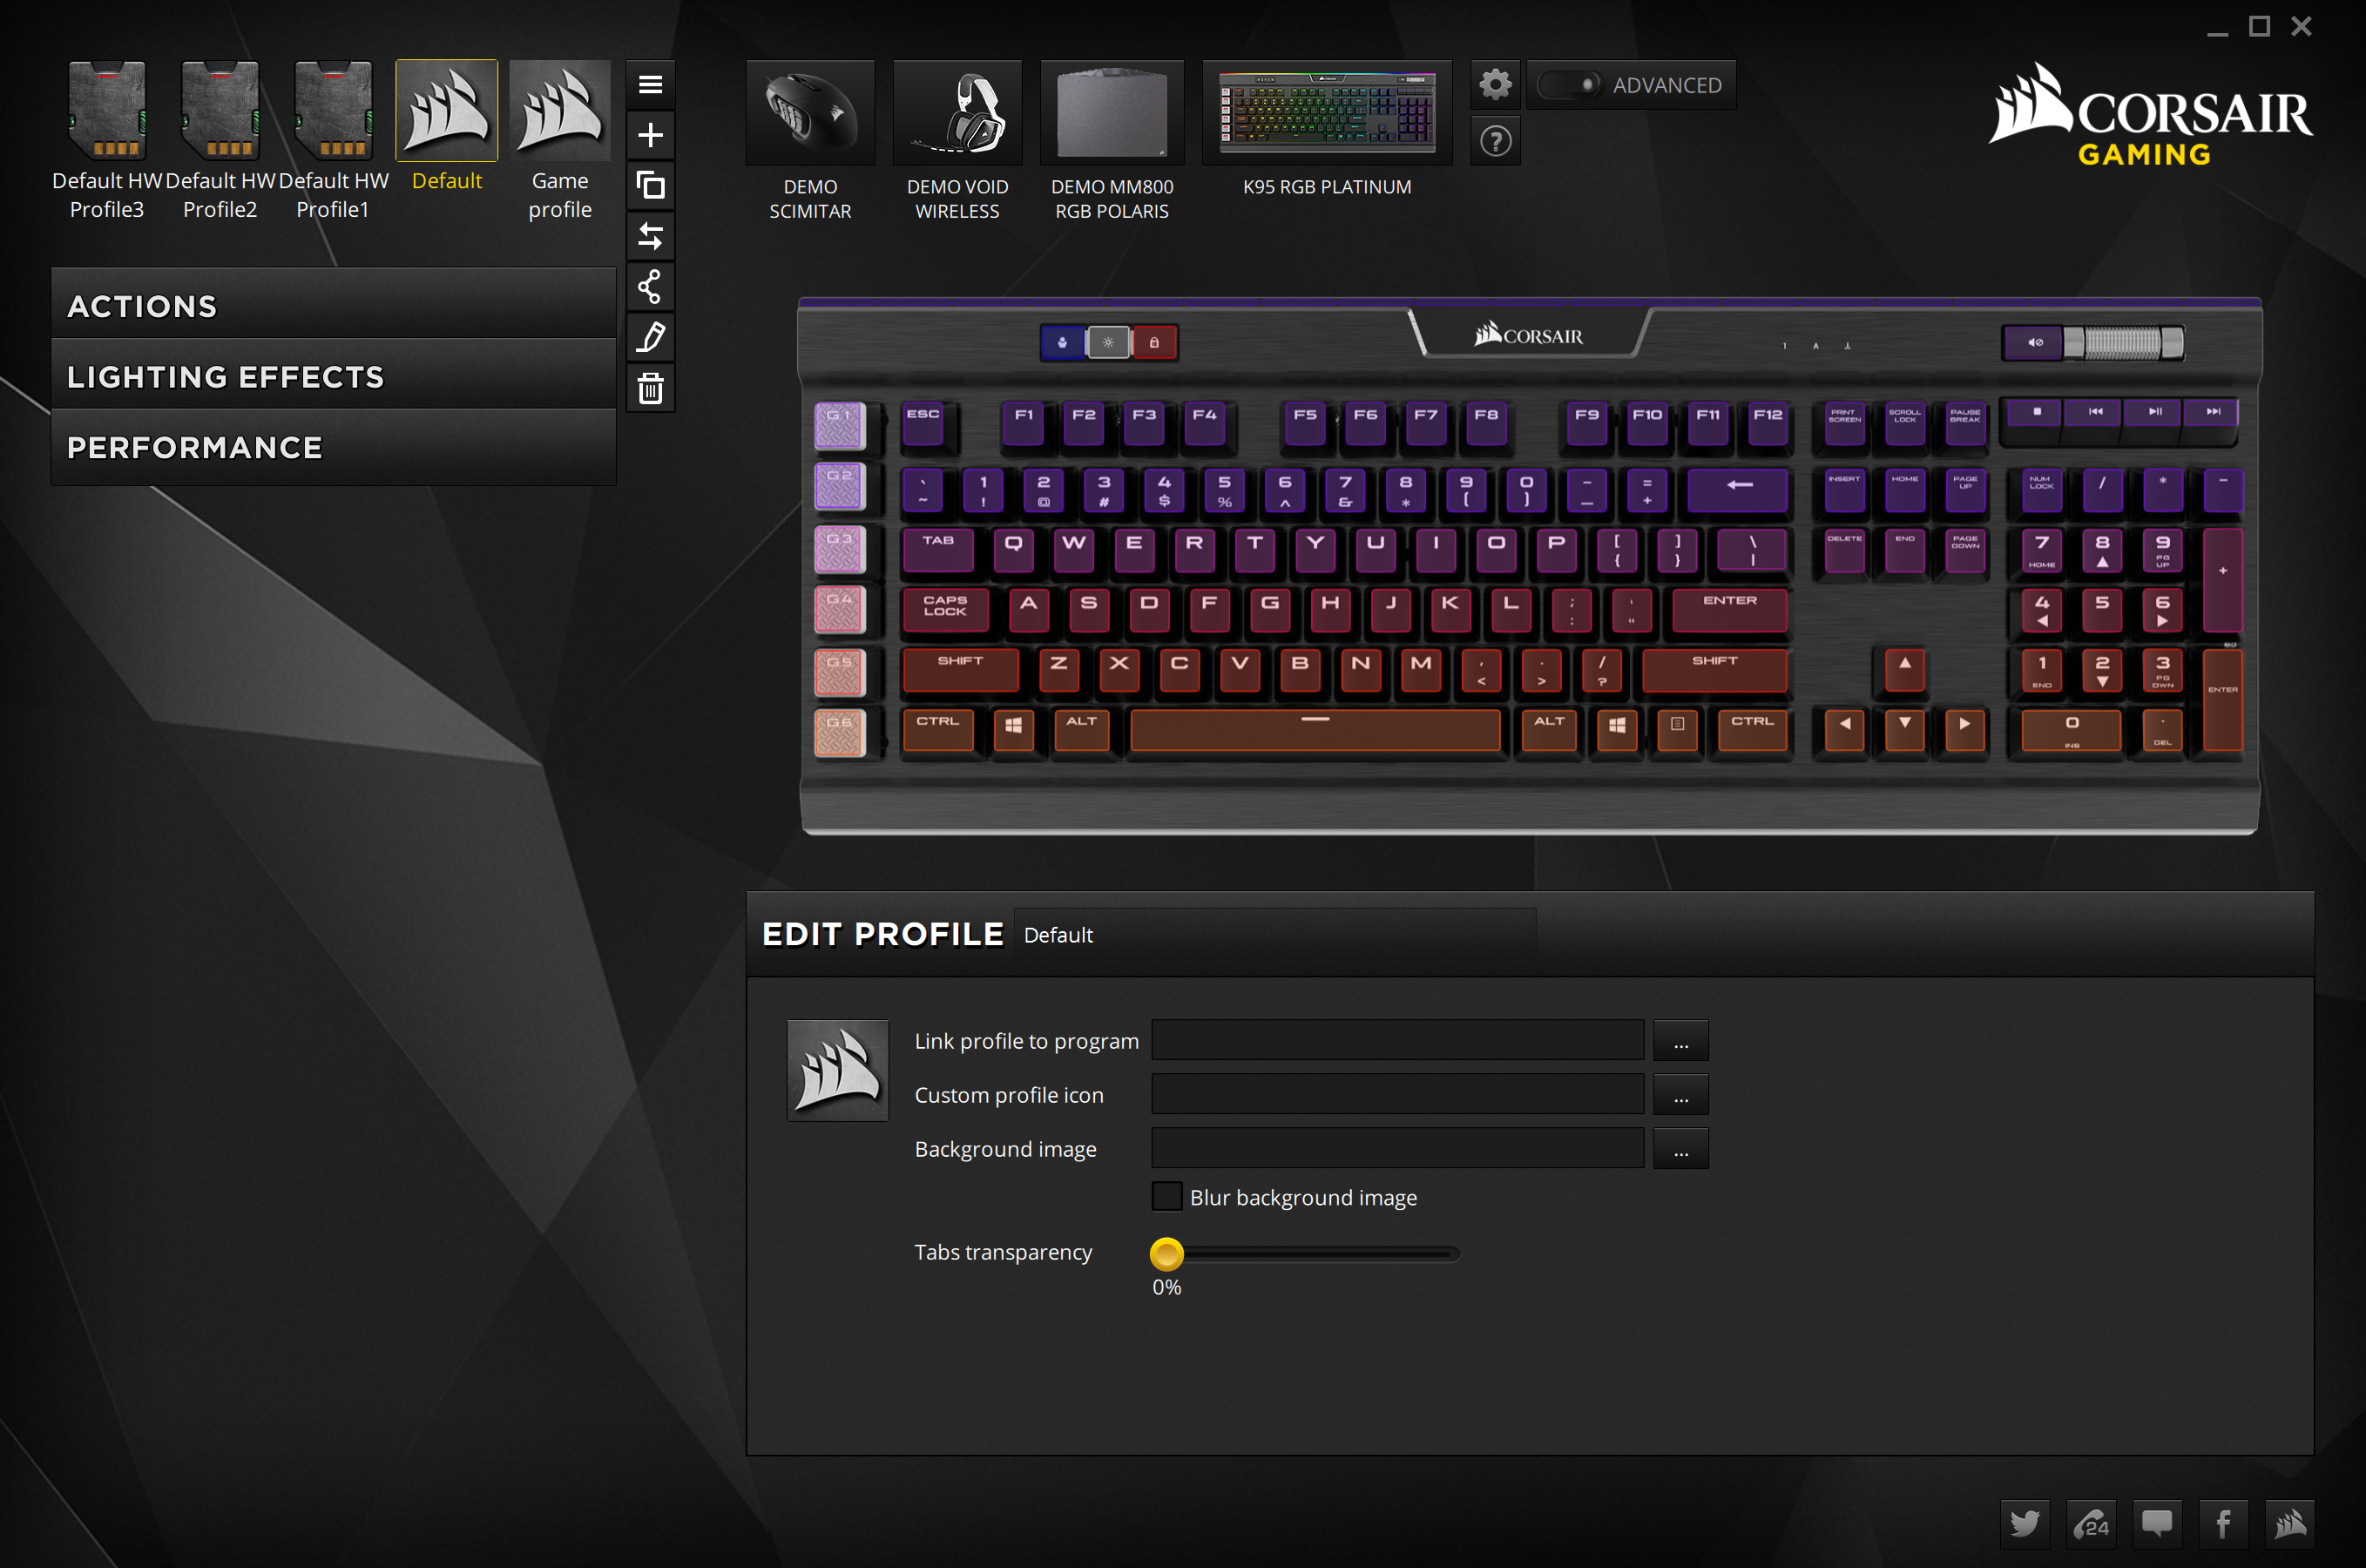 The (New) Corsair Utility Engine Software - The Corsair Gaming K95